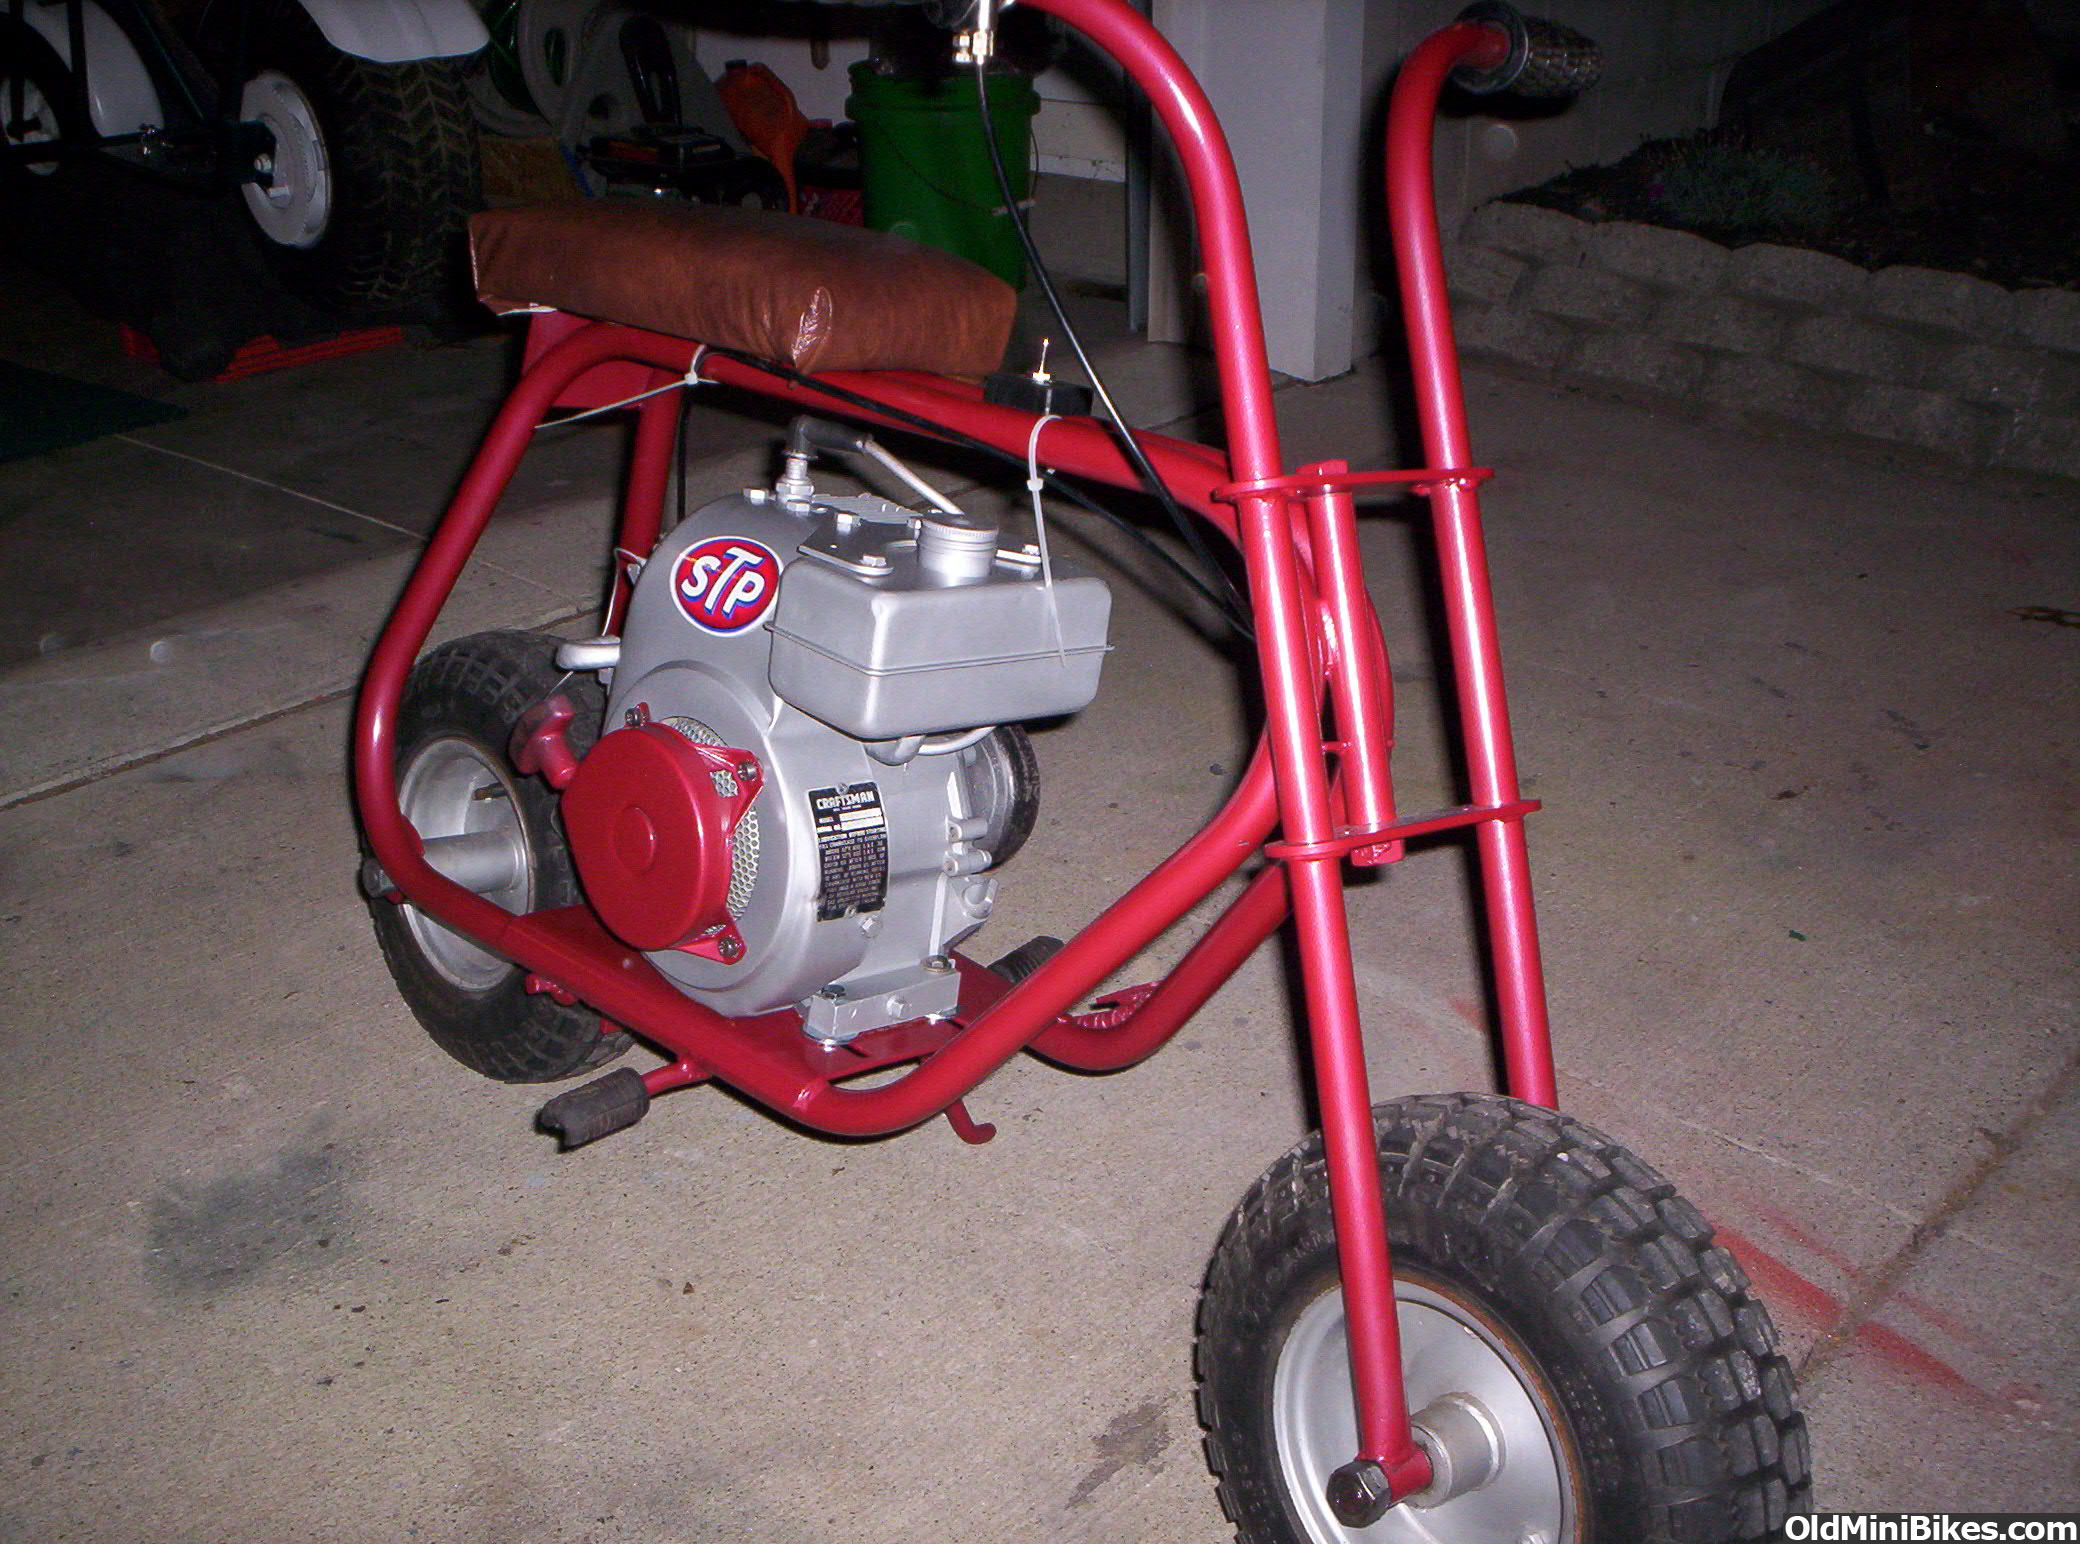 Mini Bikes For 100 Dollars : Pocket bikes for dollars bing images